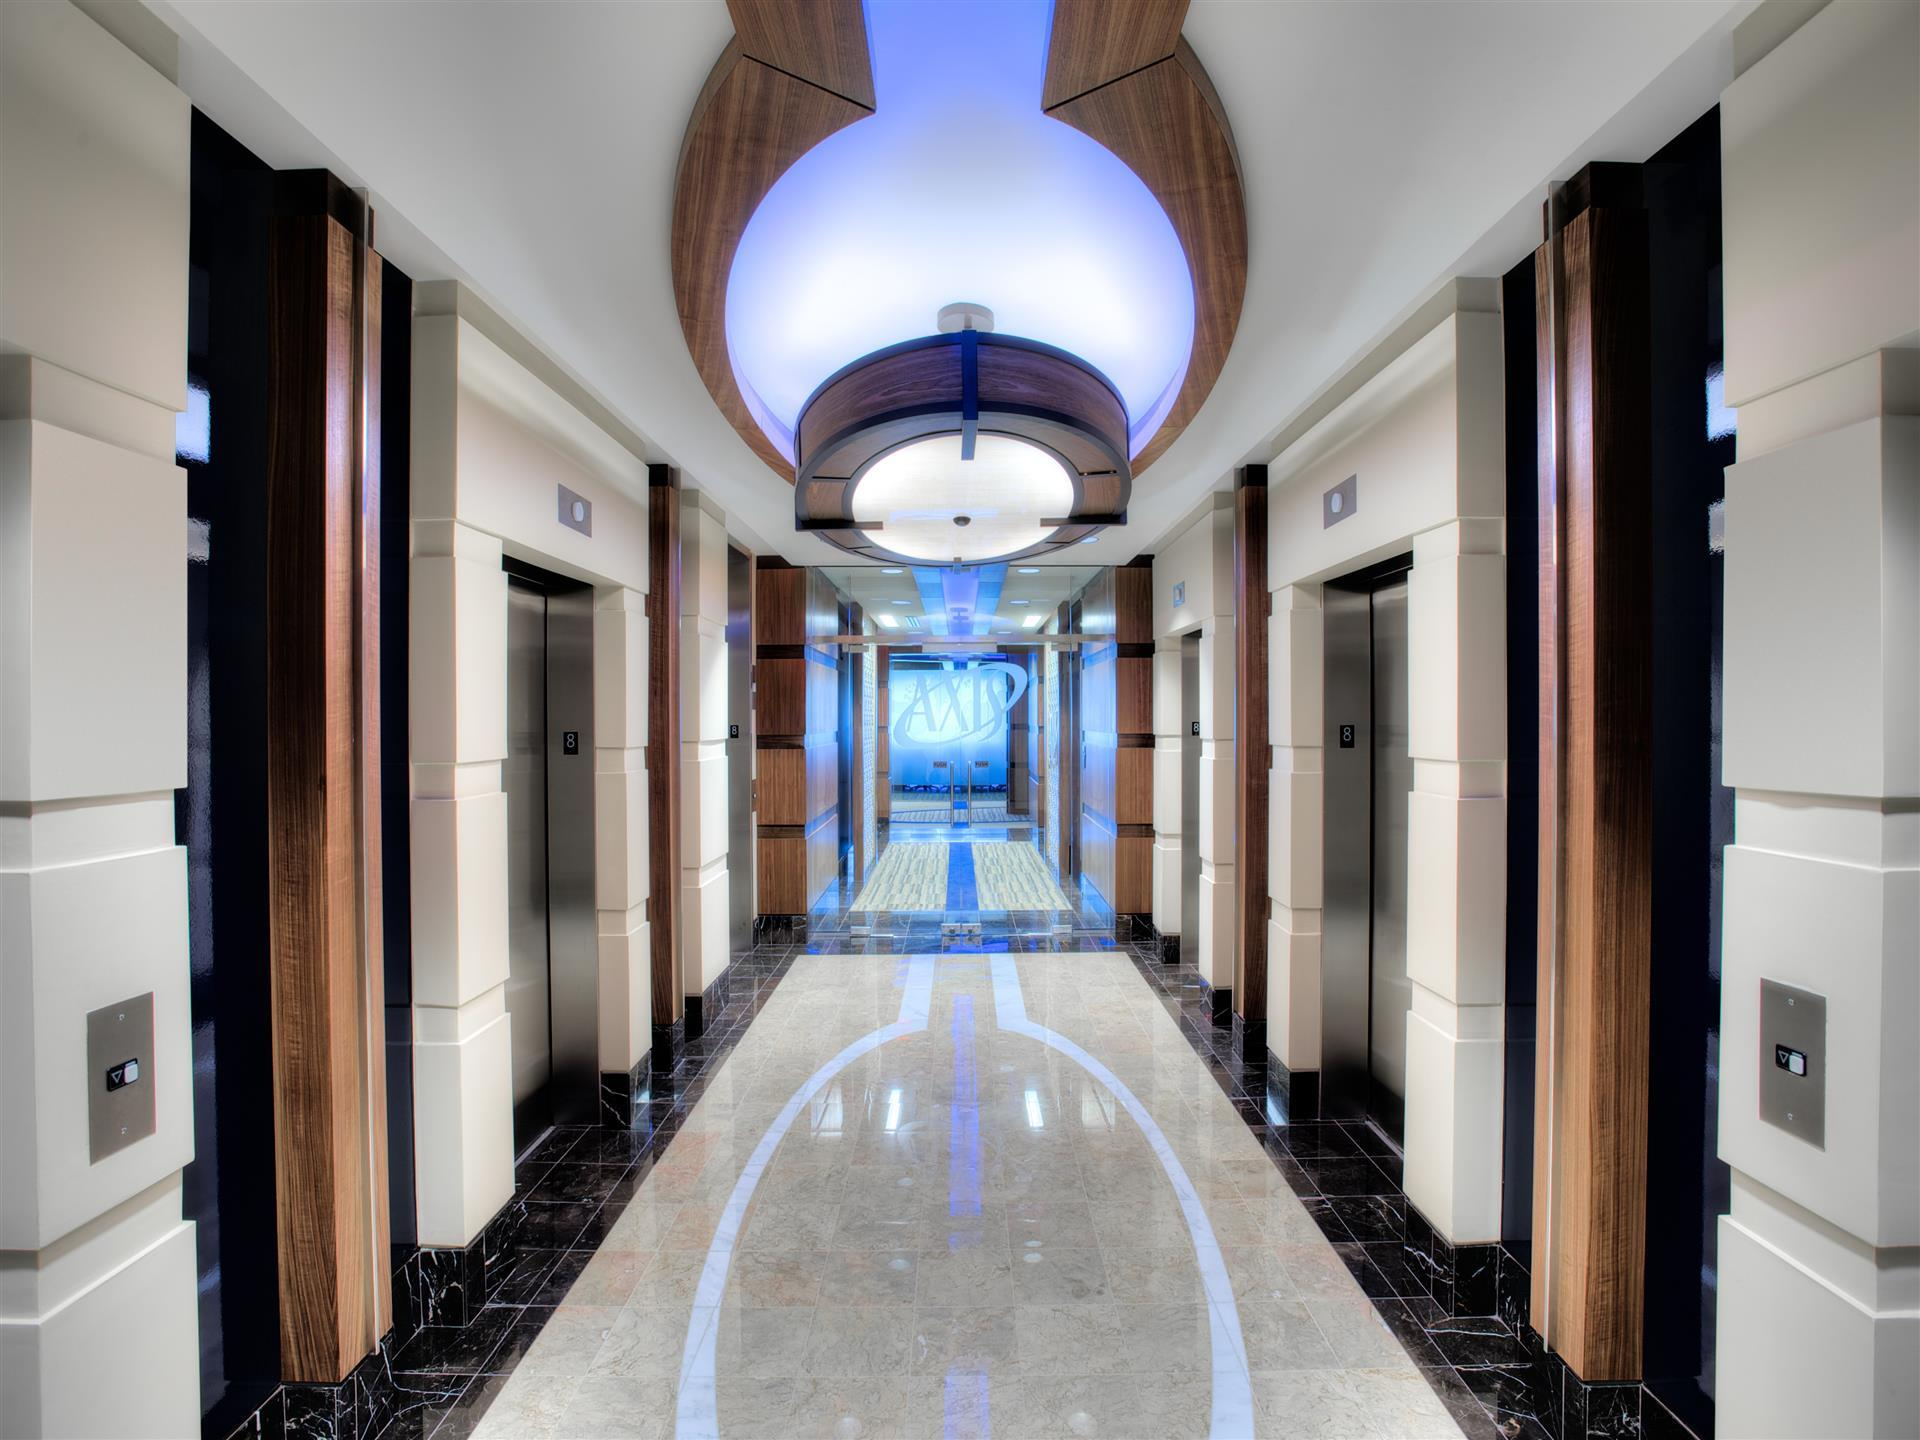 hallway with marble floors and bi overhead light on ceiling withblue aura and frosted glass doors with elevators